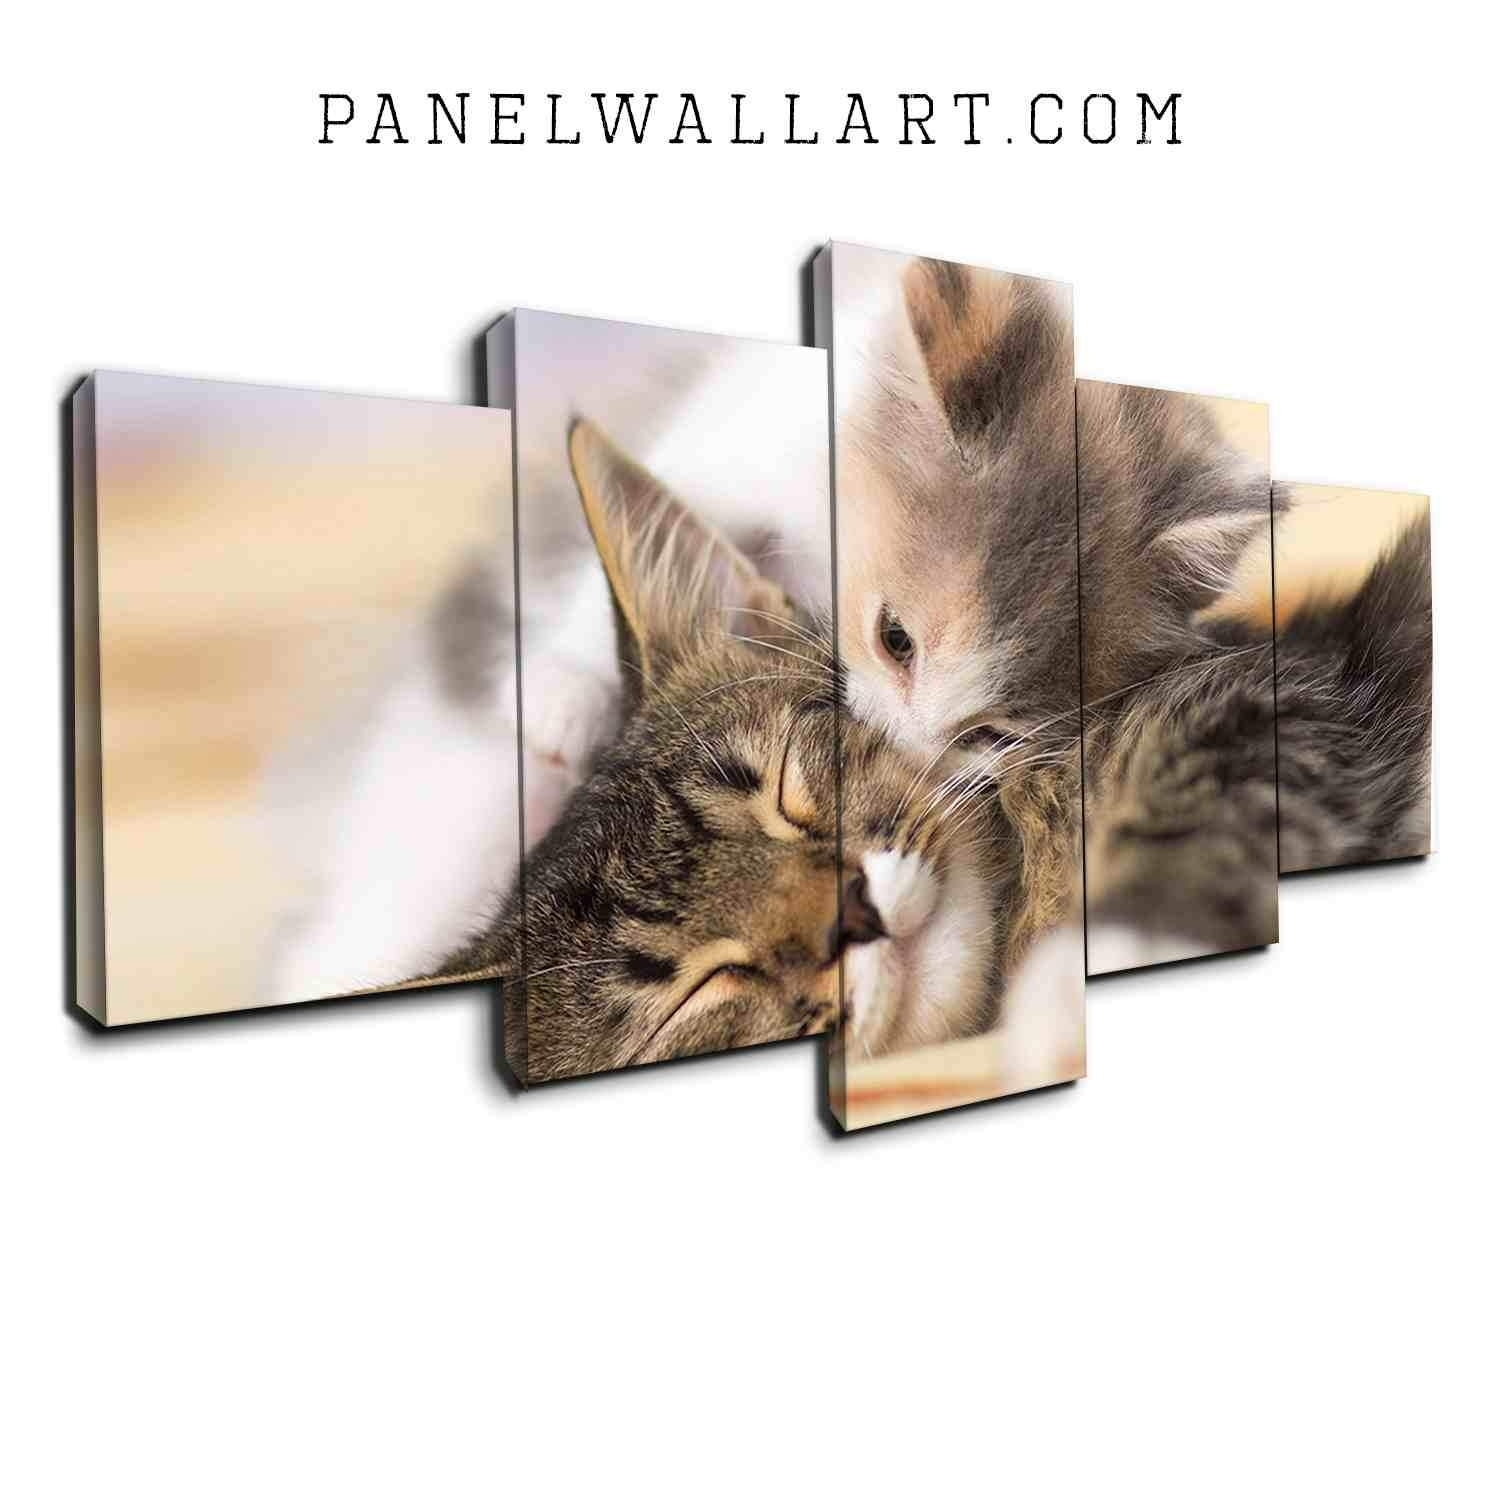 5 Panel Canvas Wall Art | Kissing Kitten On Bed | Panelwallart With Most Up To Date Cat Canvas Wall Art (View 4 of 20)